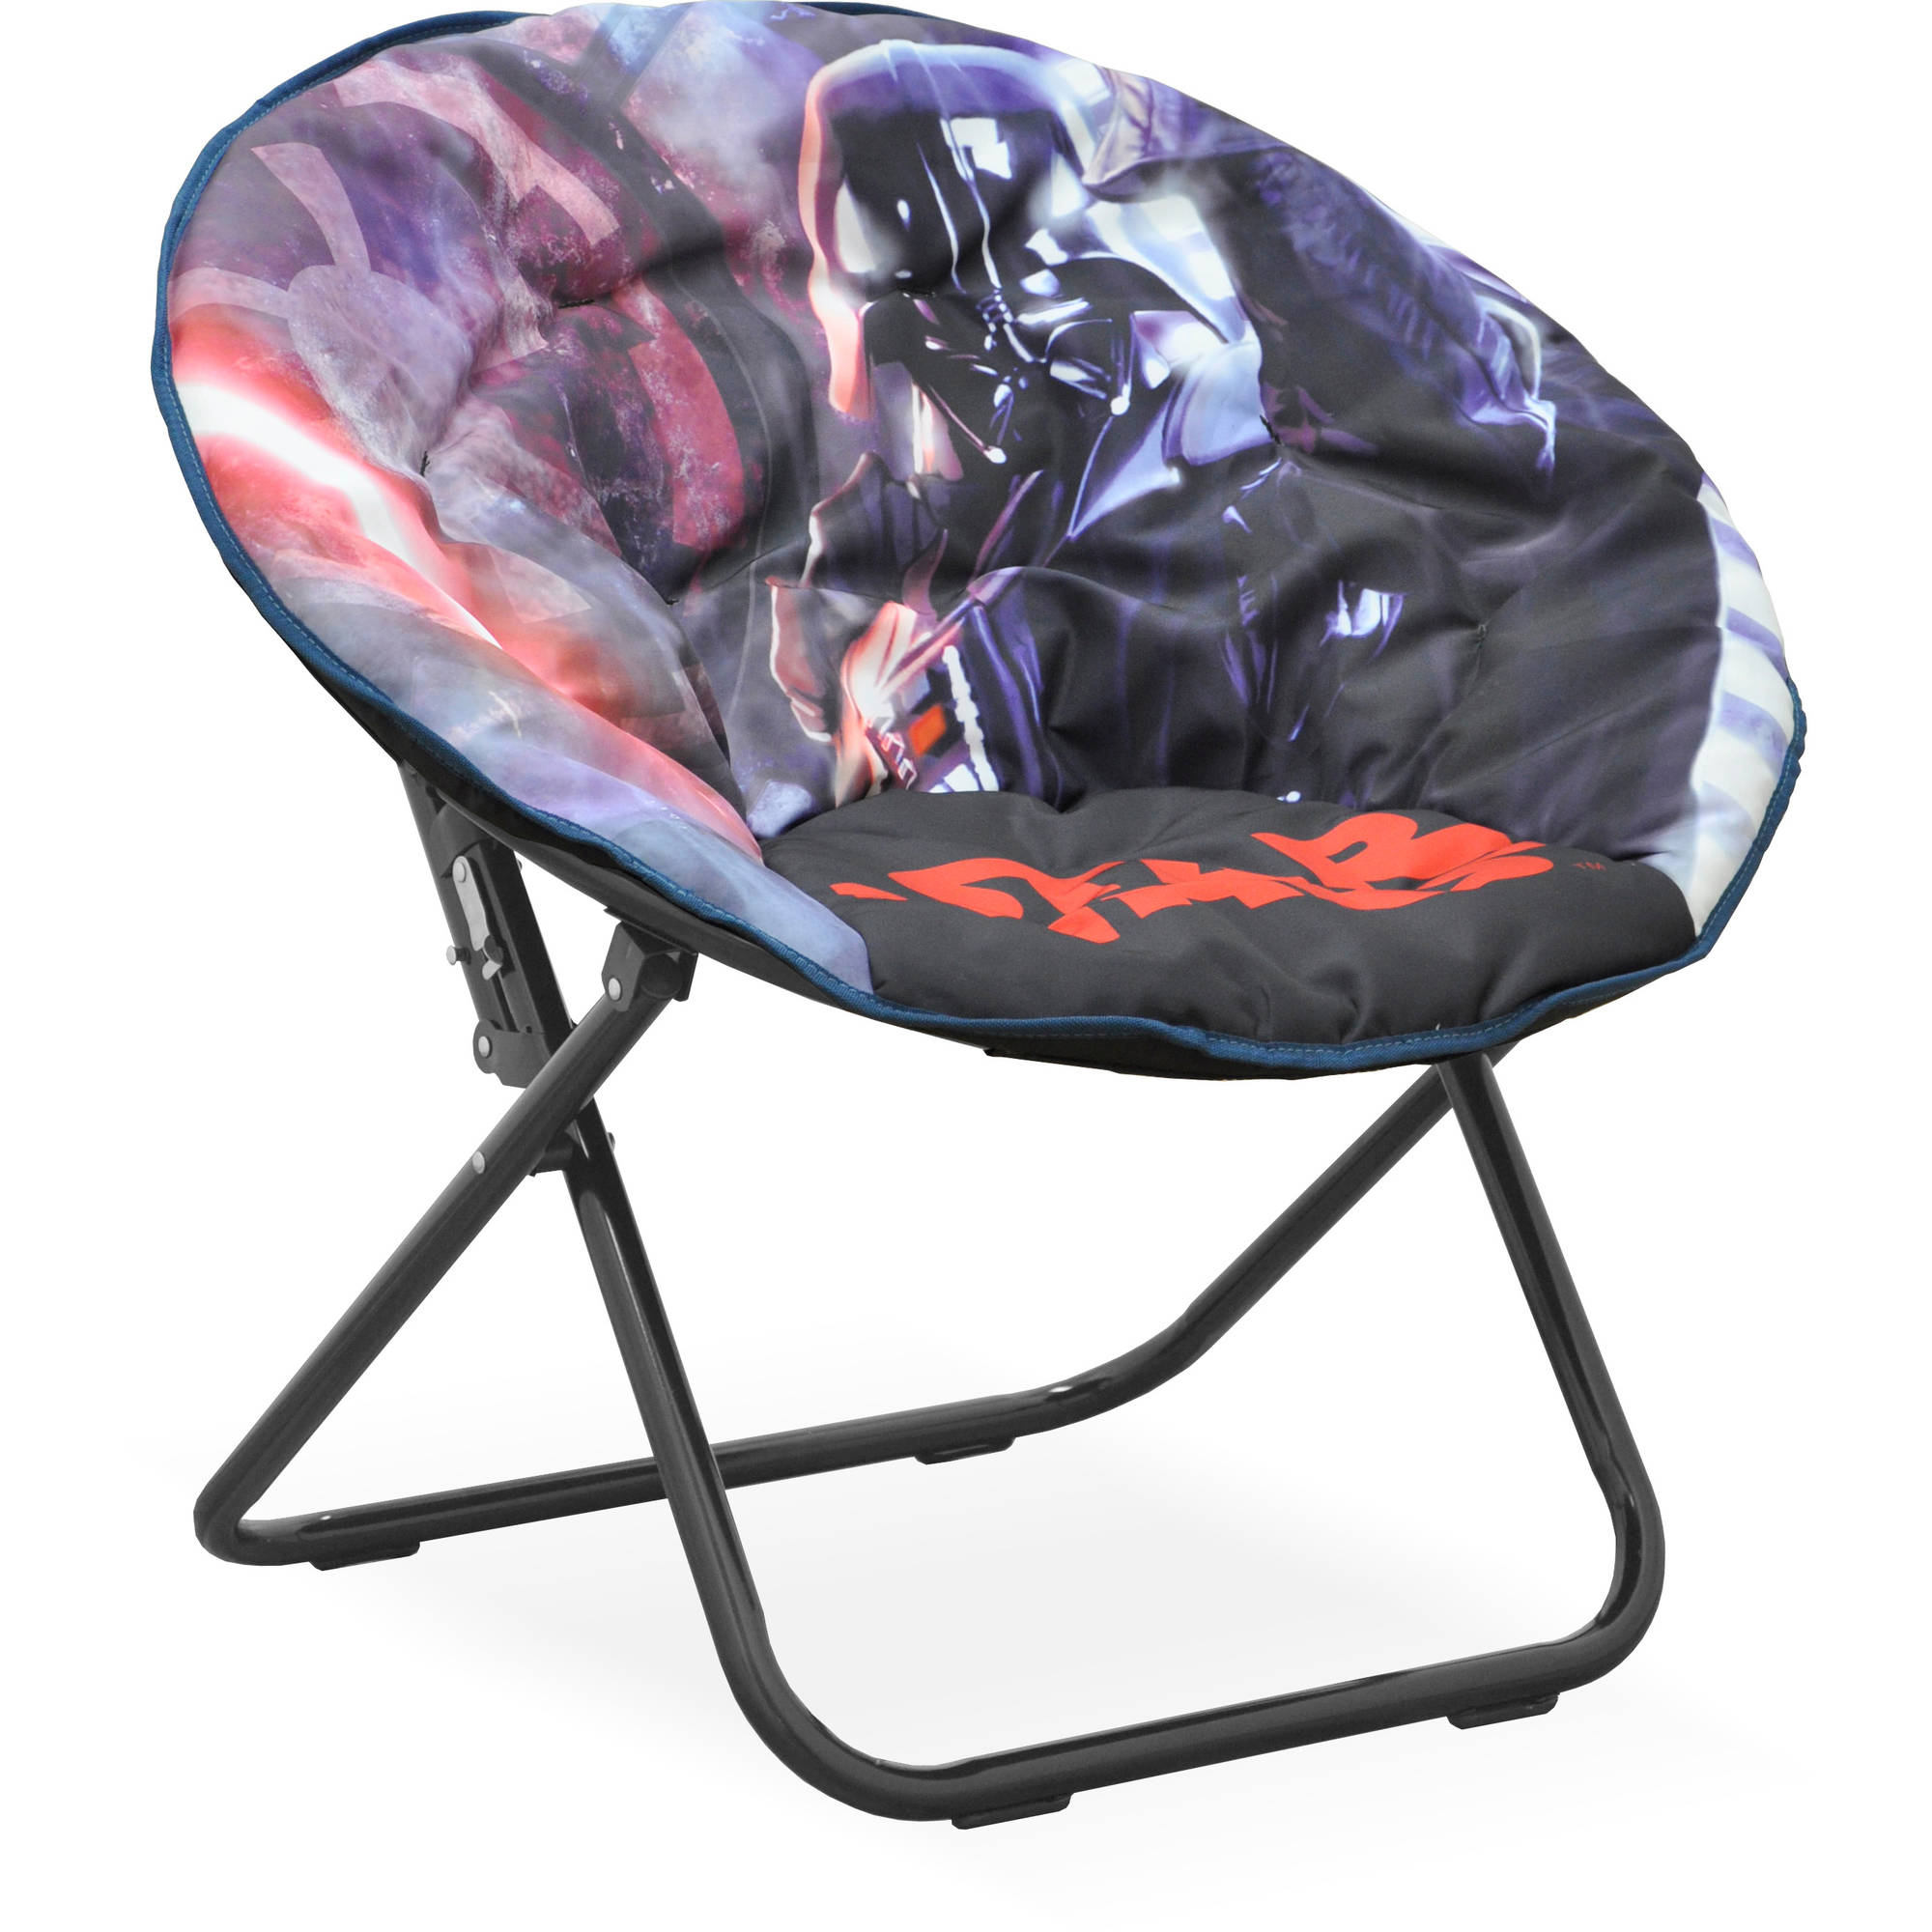 Disney Star Wars Saucer Chair, Available in Multiple Prints